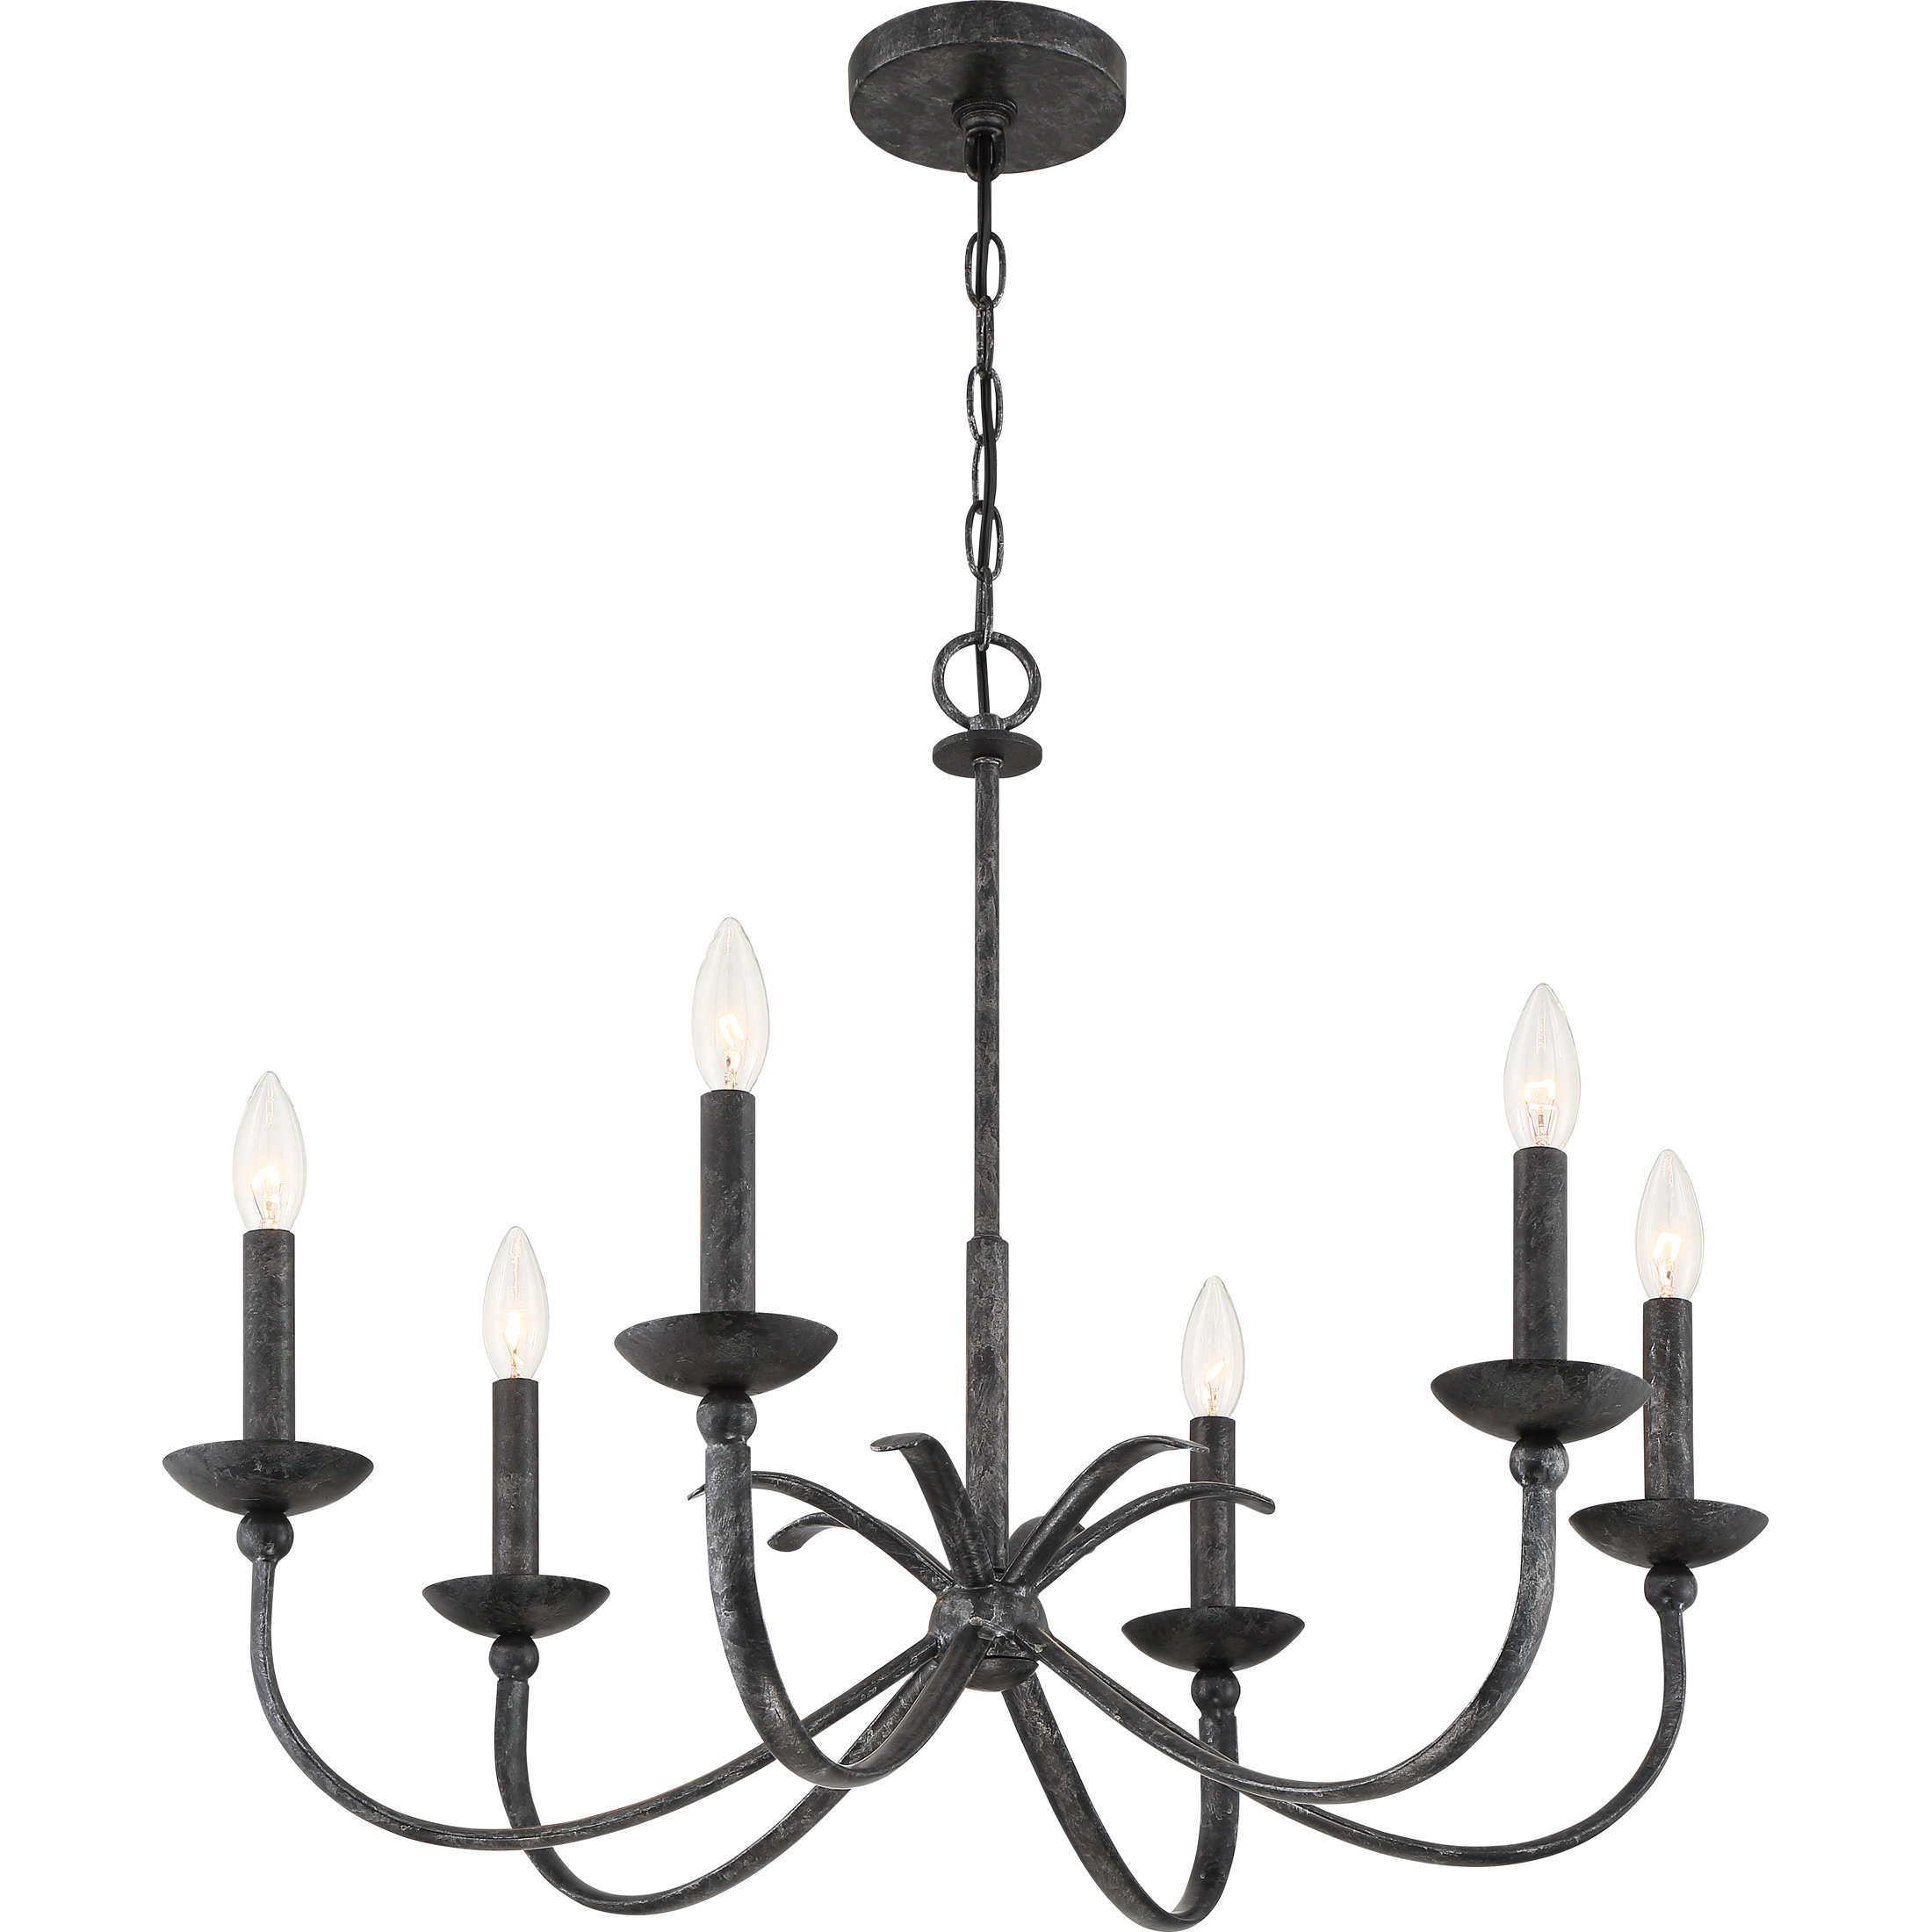 Goodin 6-Light Candle Style Chandelier with Shaylee 5-Light Candle Style Chandeliers (Image 6 of 30)